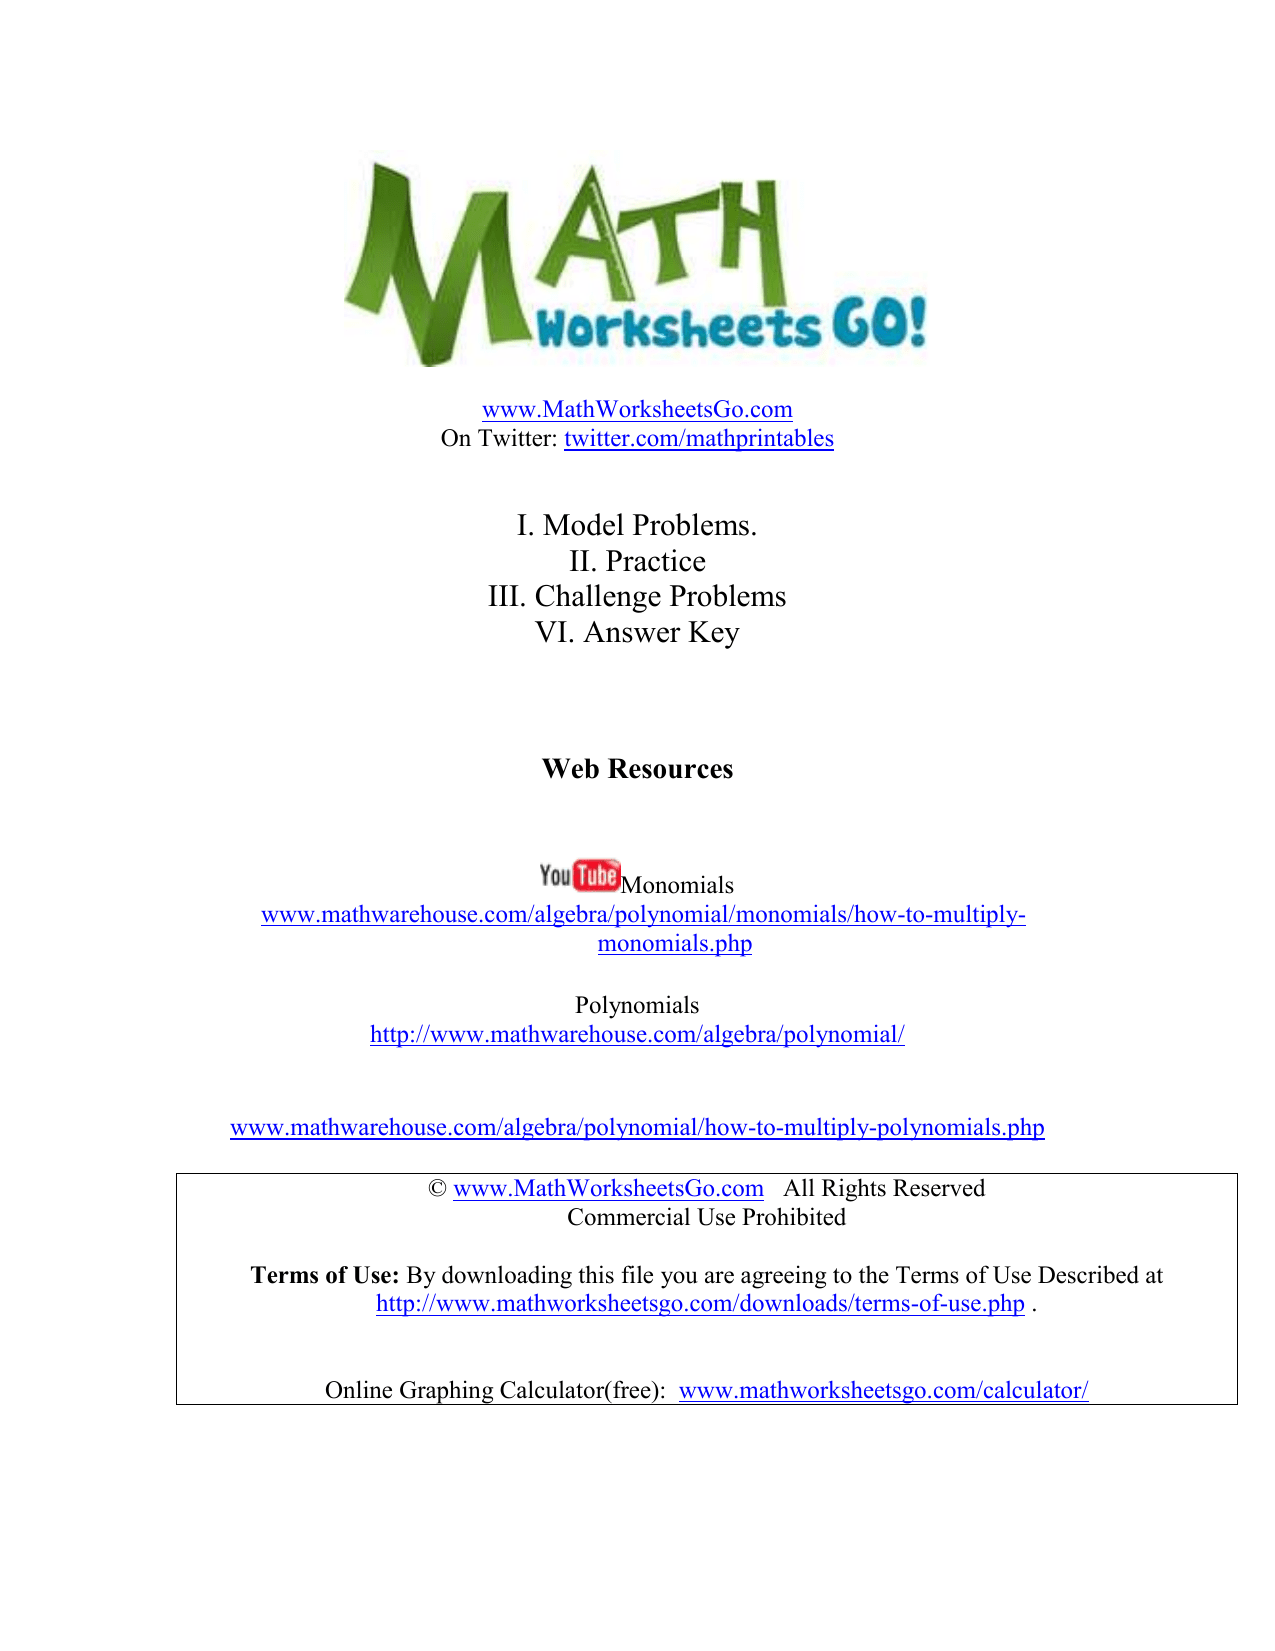 Multiplying Monomials And Polynomials Worksheet Basic